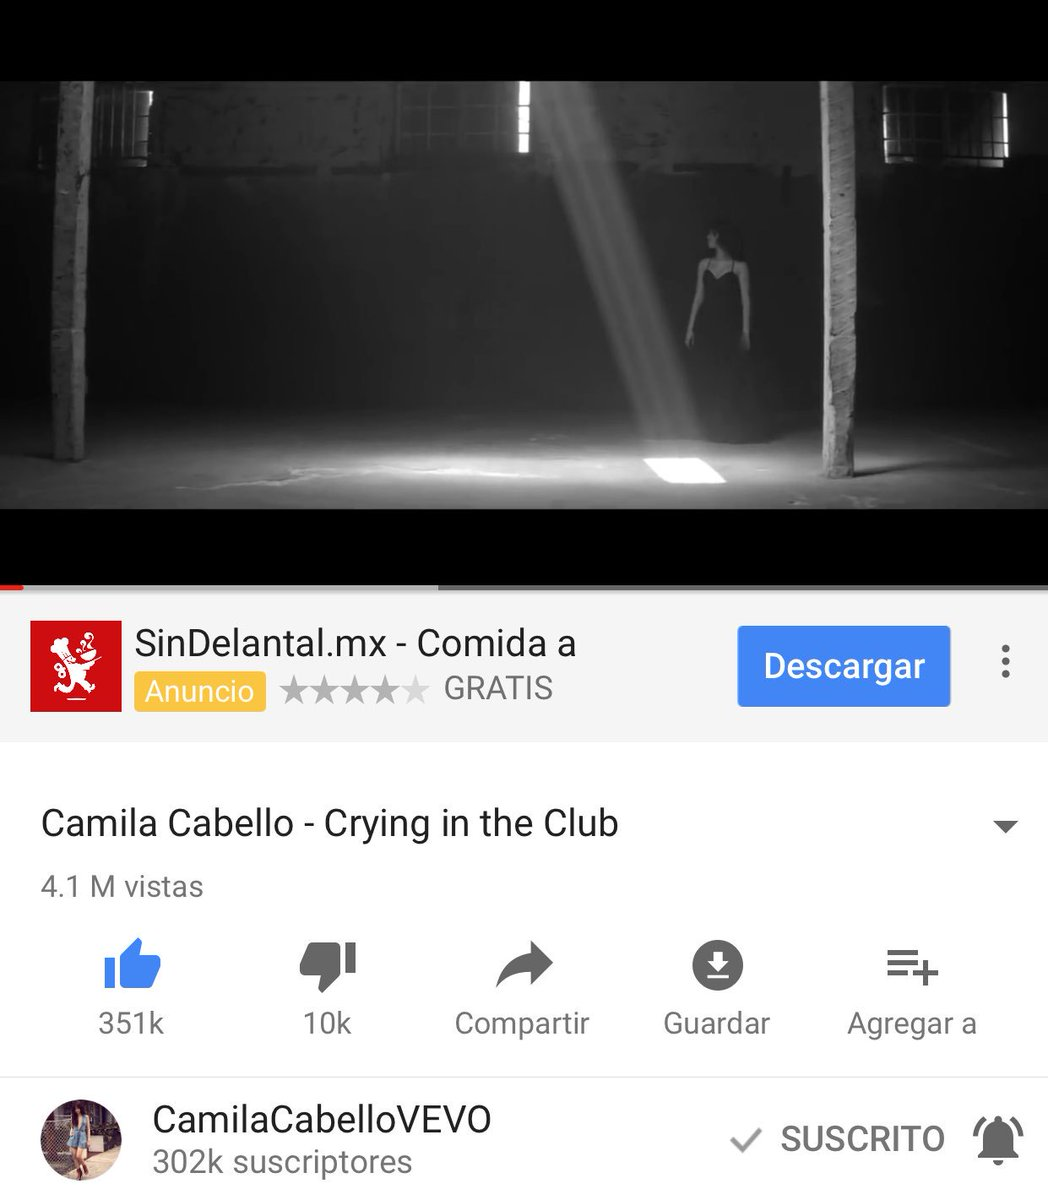 4.1 M de views and #10 trending ¡WHAT A MASTERPIECE! Let&#39;s go #CryingInTheClubMusicVideo <br>http://pic.twitter.com/WFFlmRaJVG